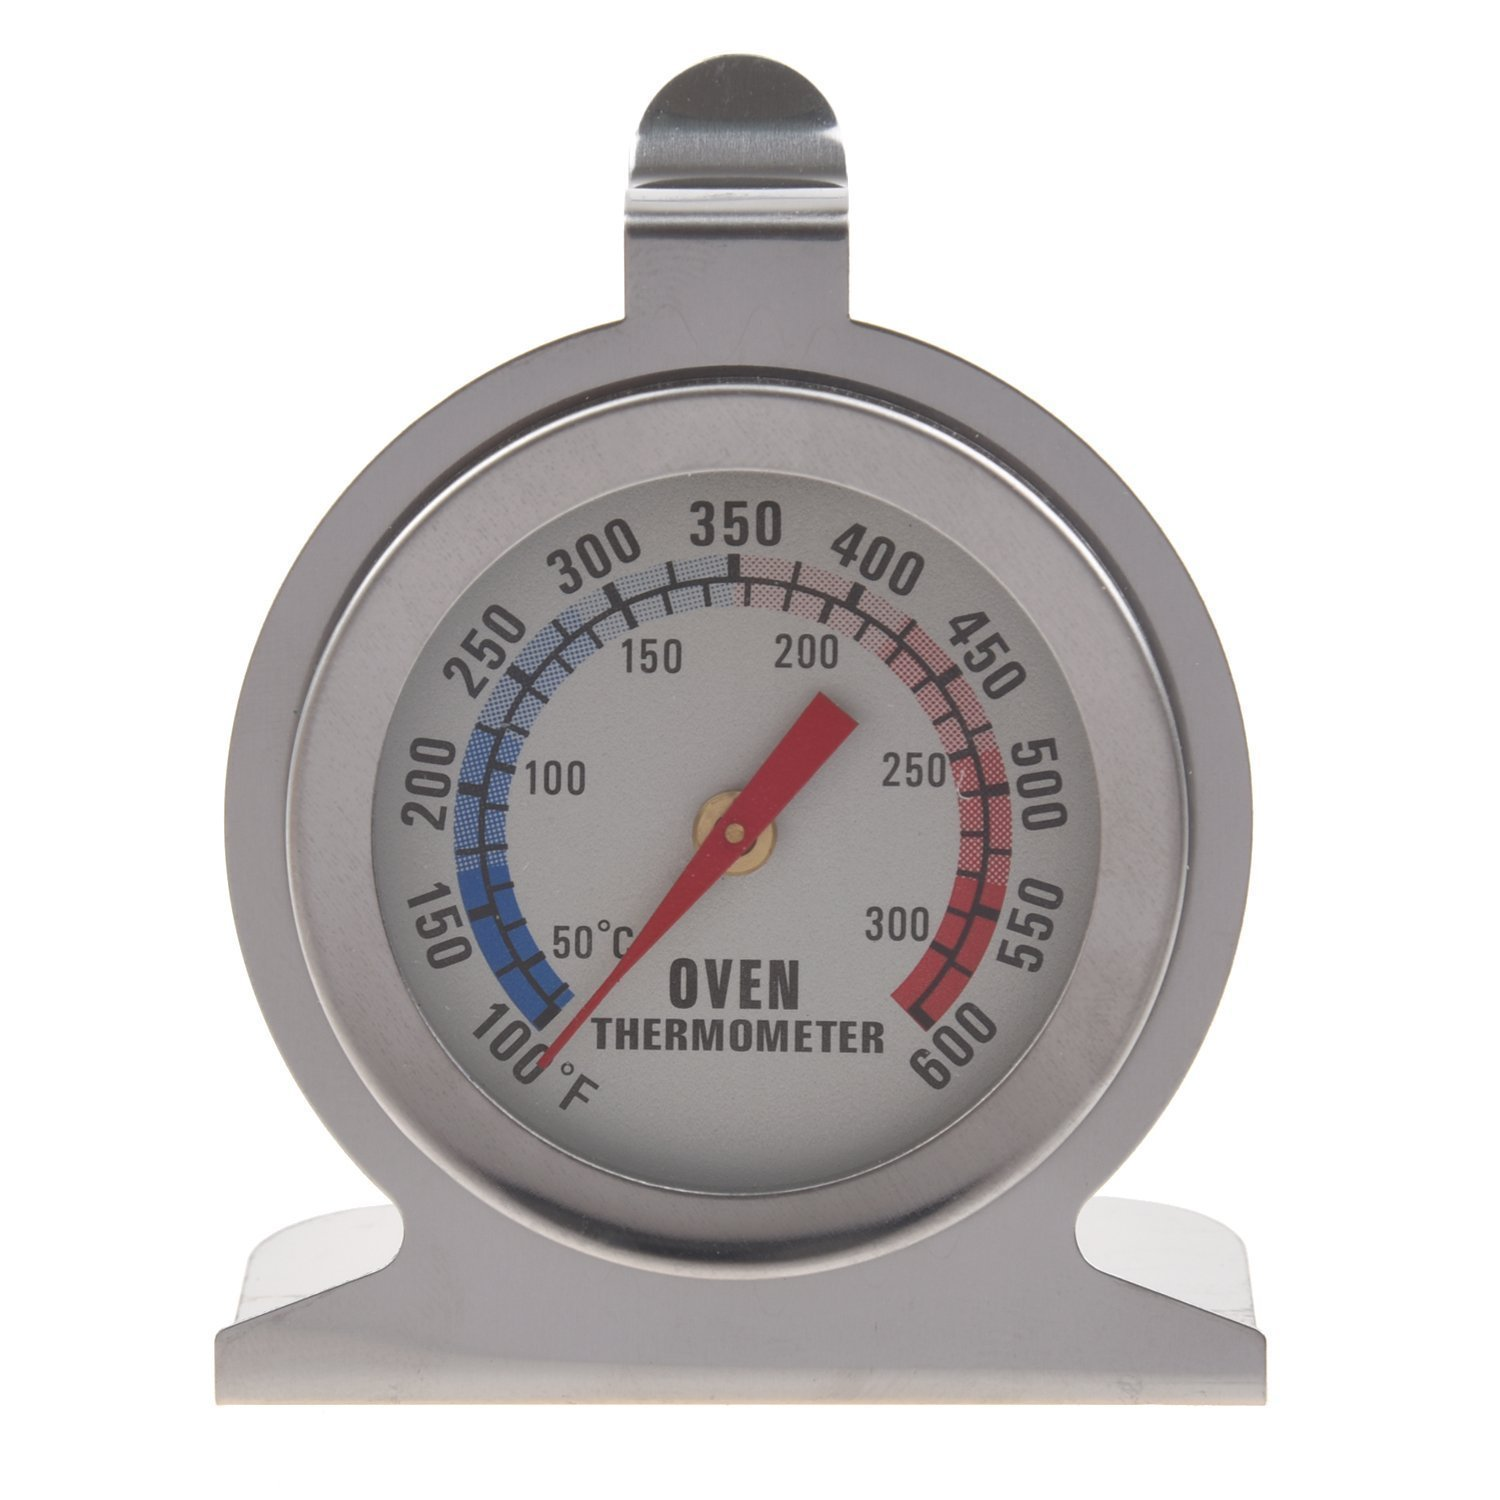 SODIAL(R) Stainless Steel Oven Thermometer - Hang Or Stand In Oven